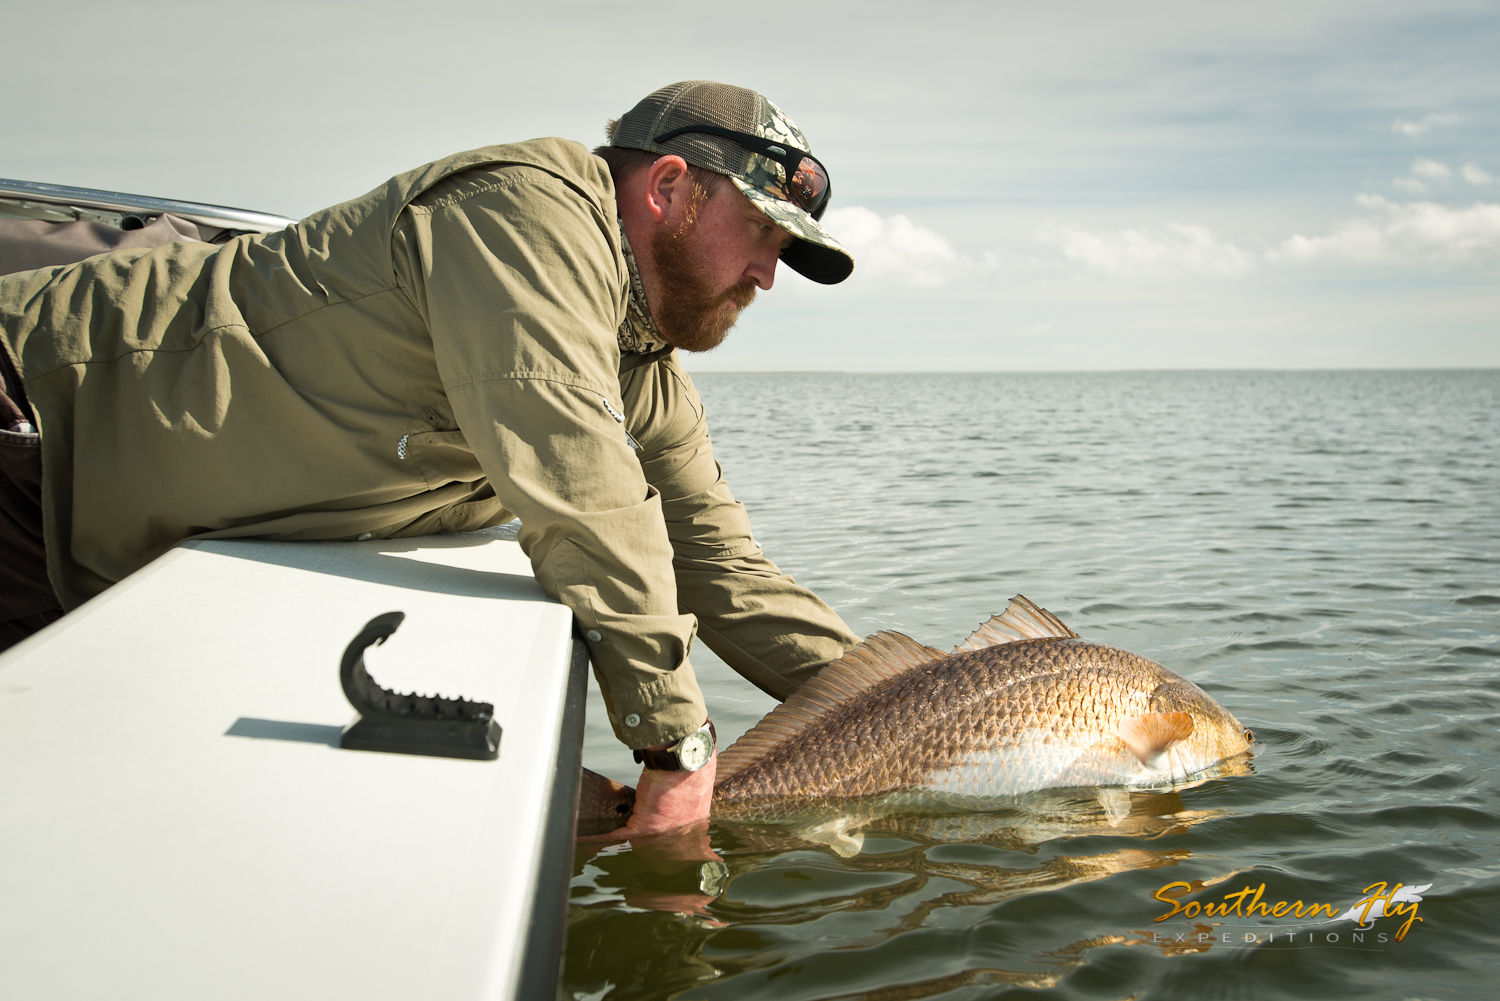 Fly fishing new orleans louisiana with Southern Fly Expeditions